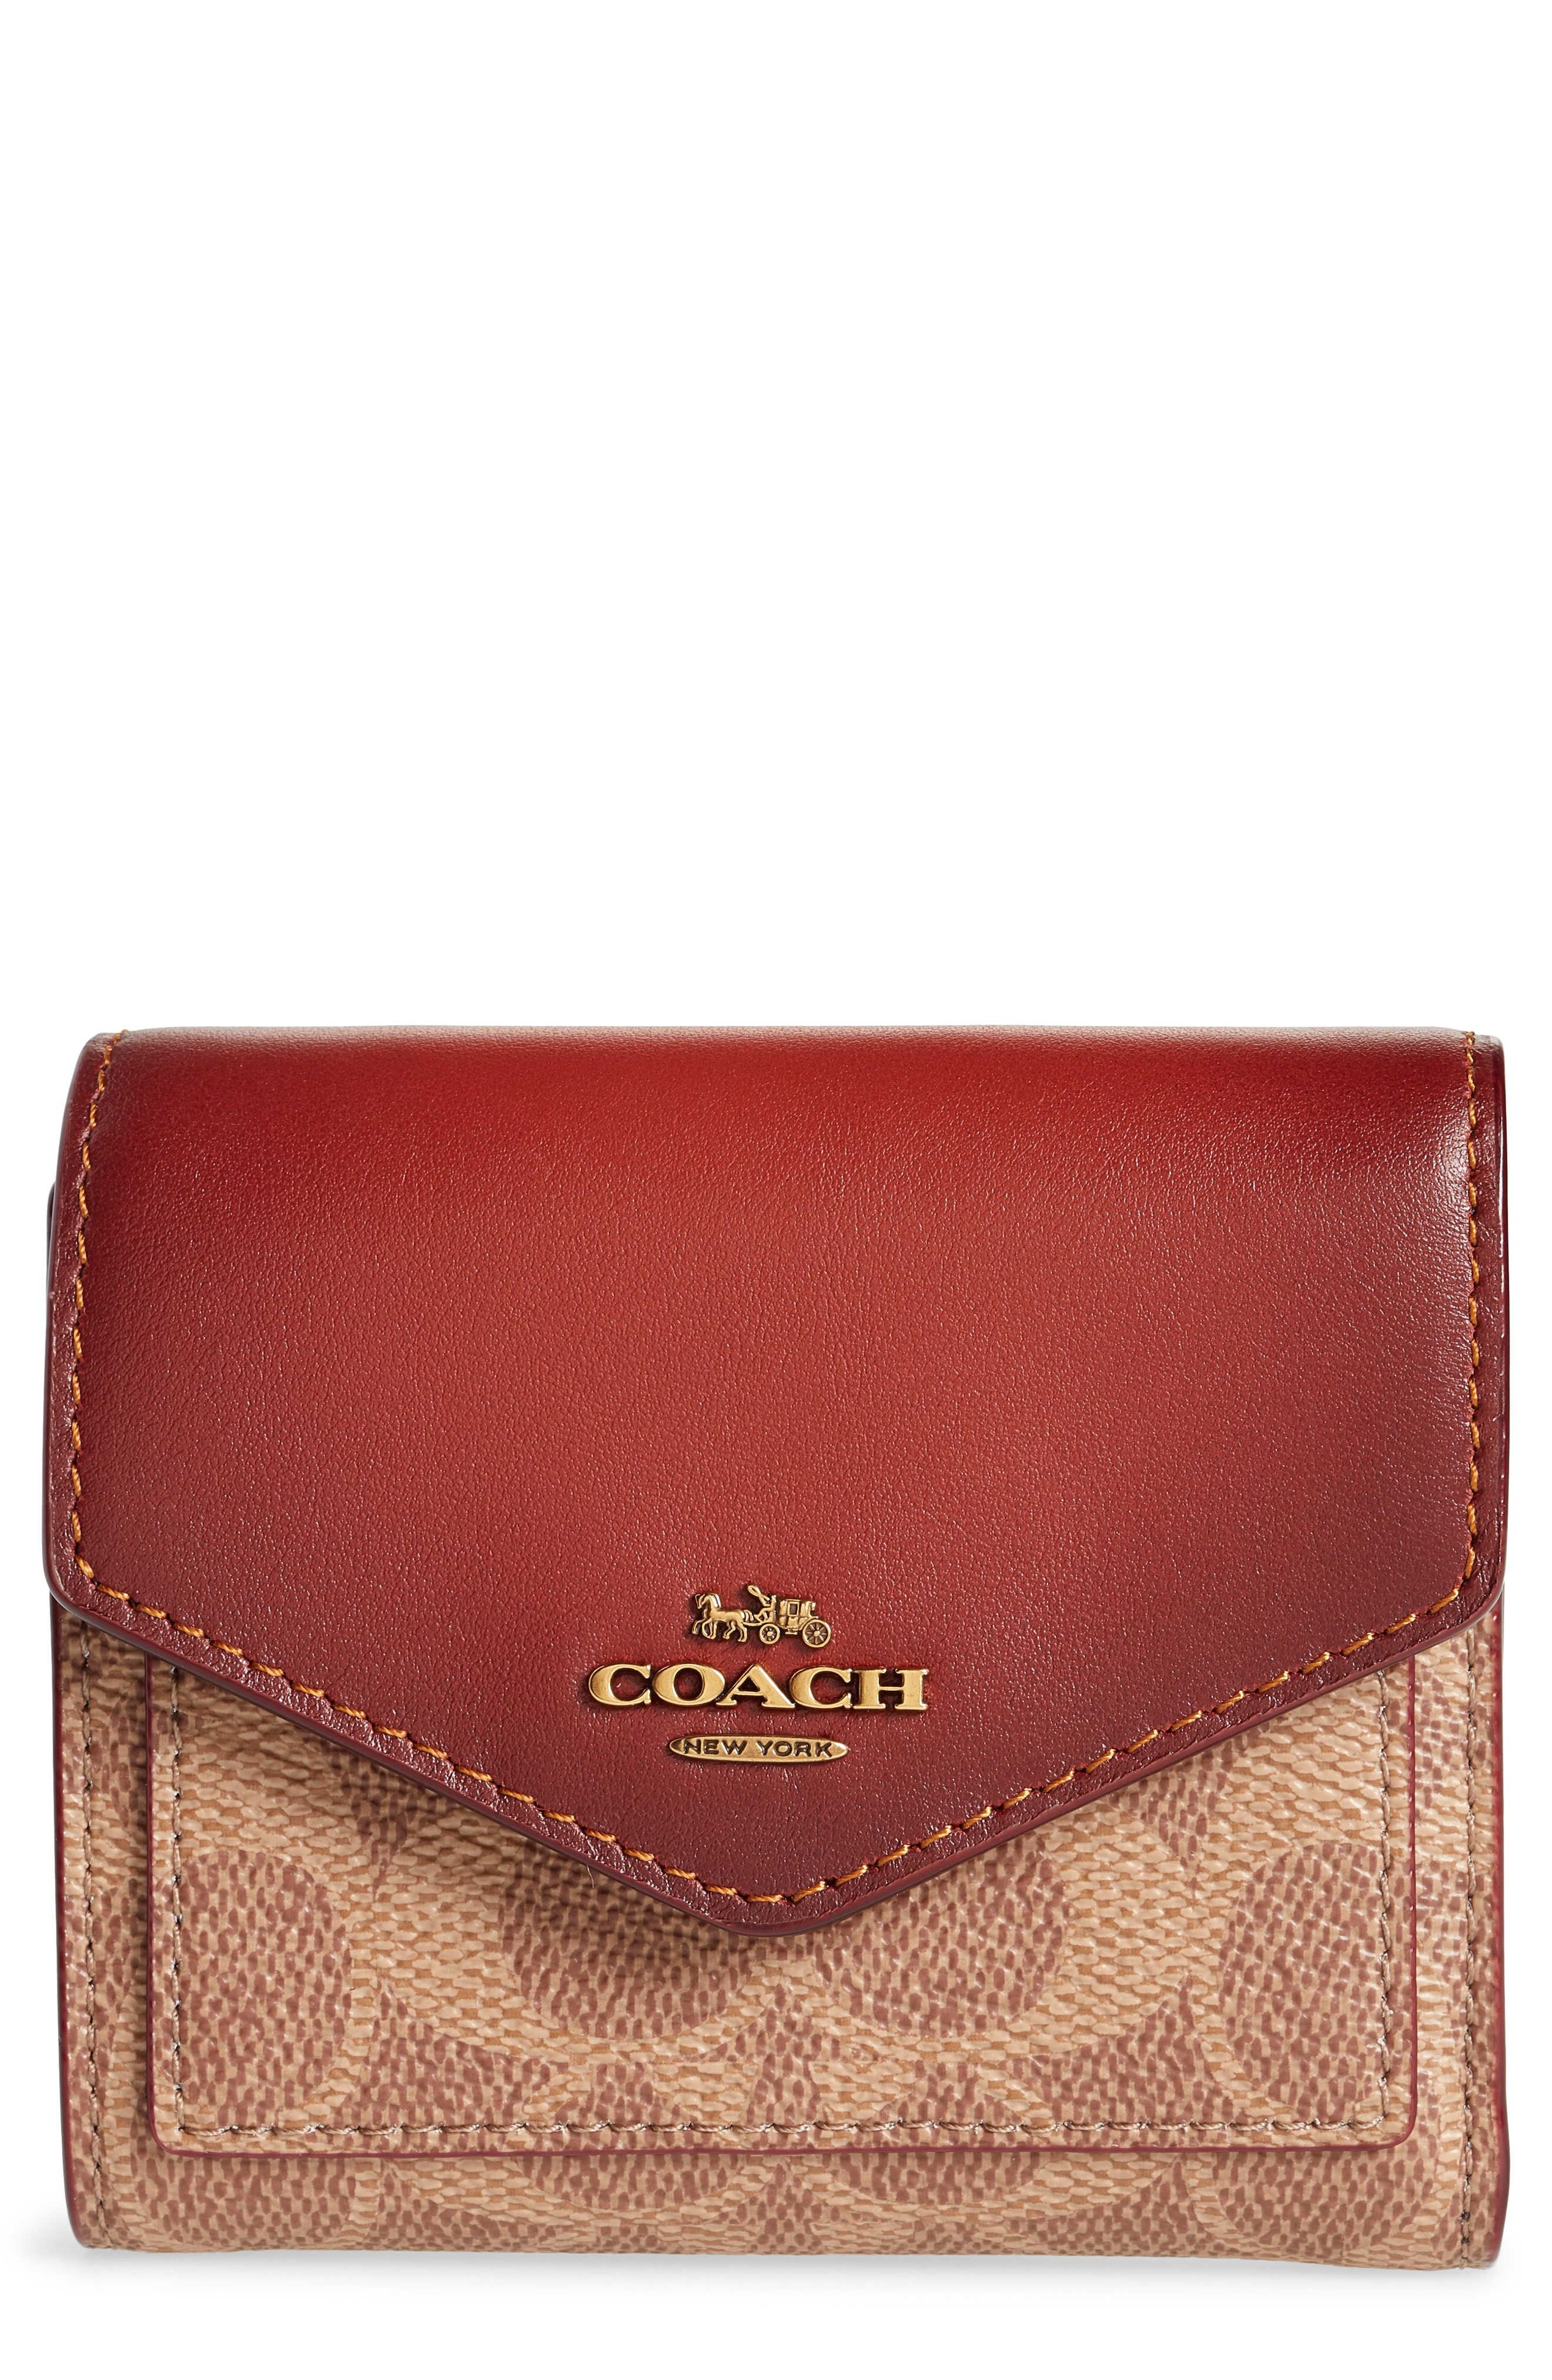 COACH Colorblock Coated Canvas & Leather Flap Wallet